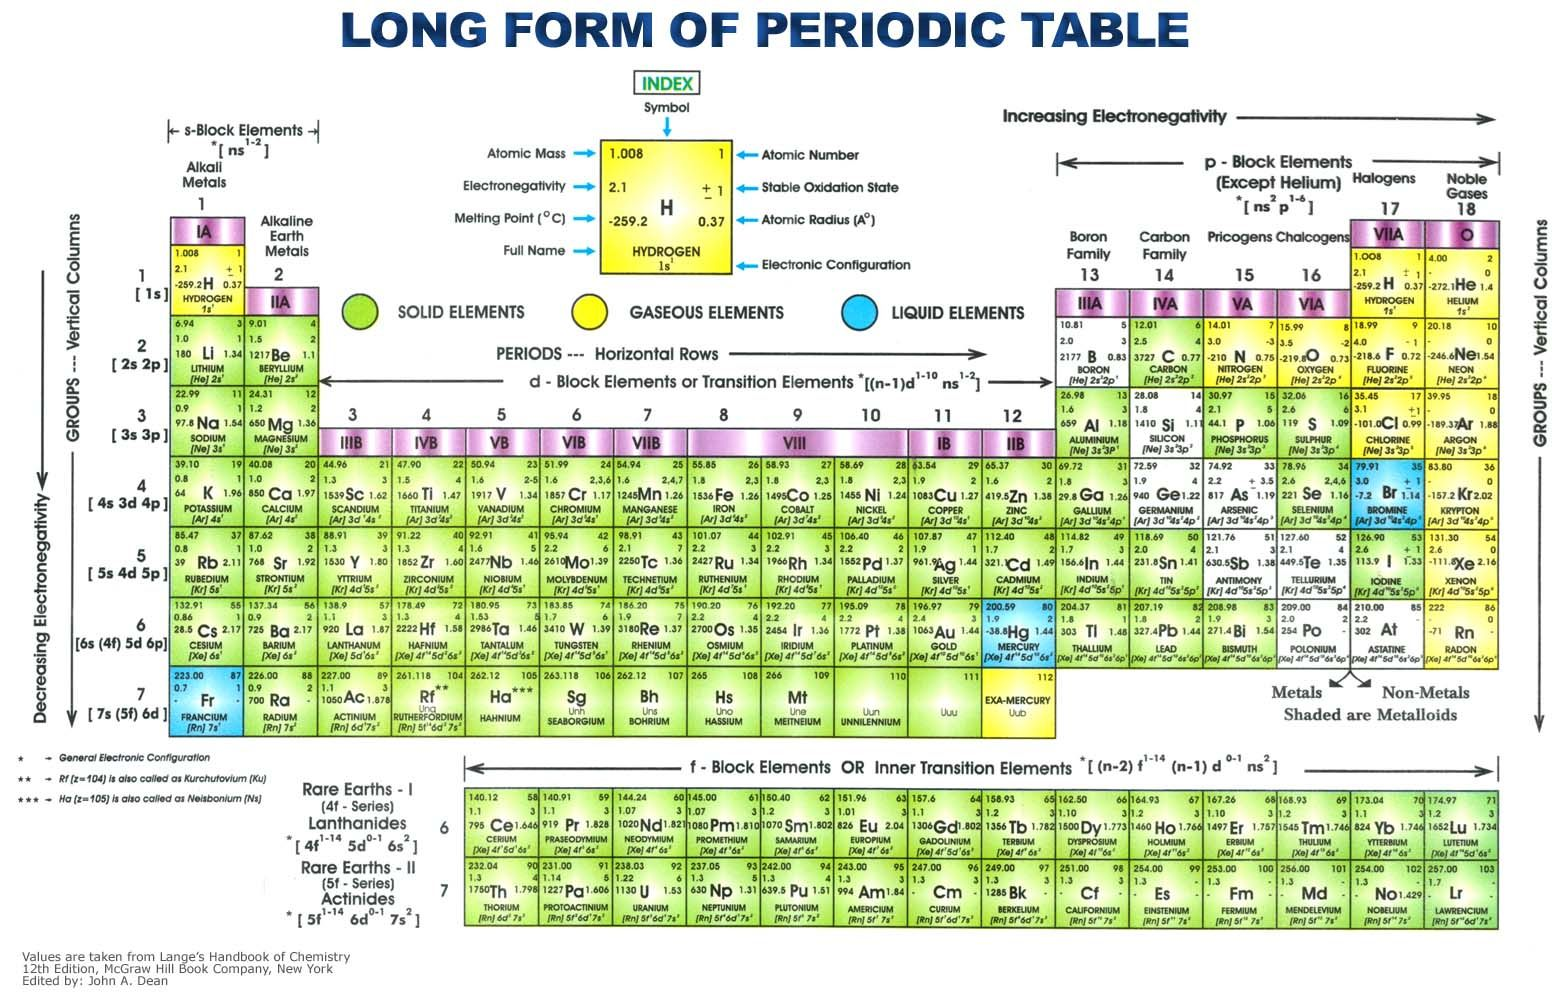 Periodic table of elements with everything image size is 1562 periodic table of elements with everything image size is 1562 pixels wide x 998 pixels urtaz Gallery